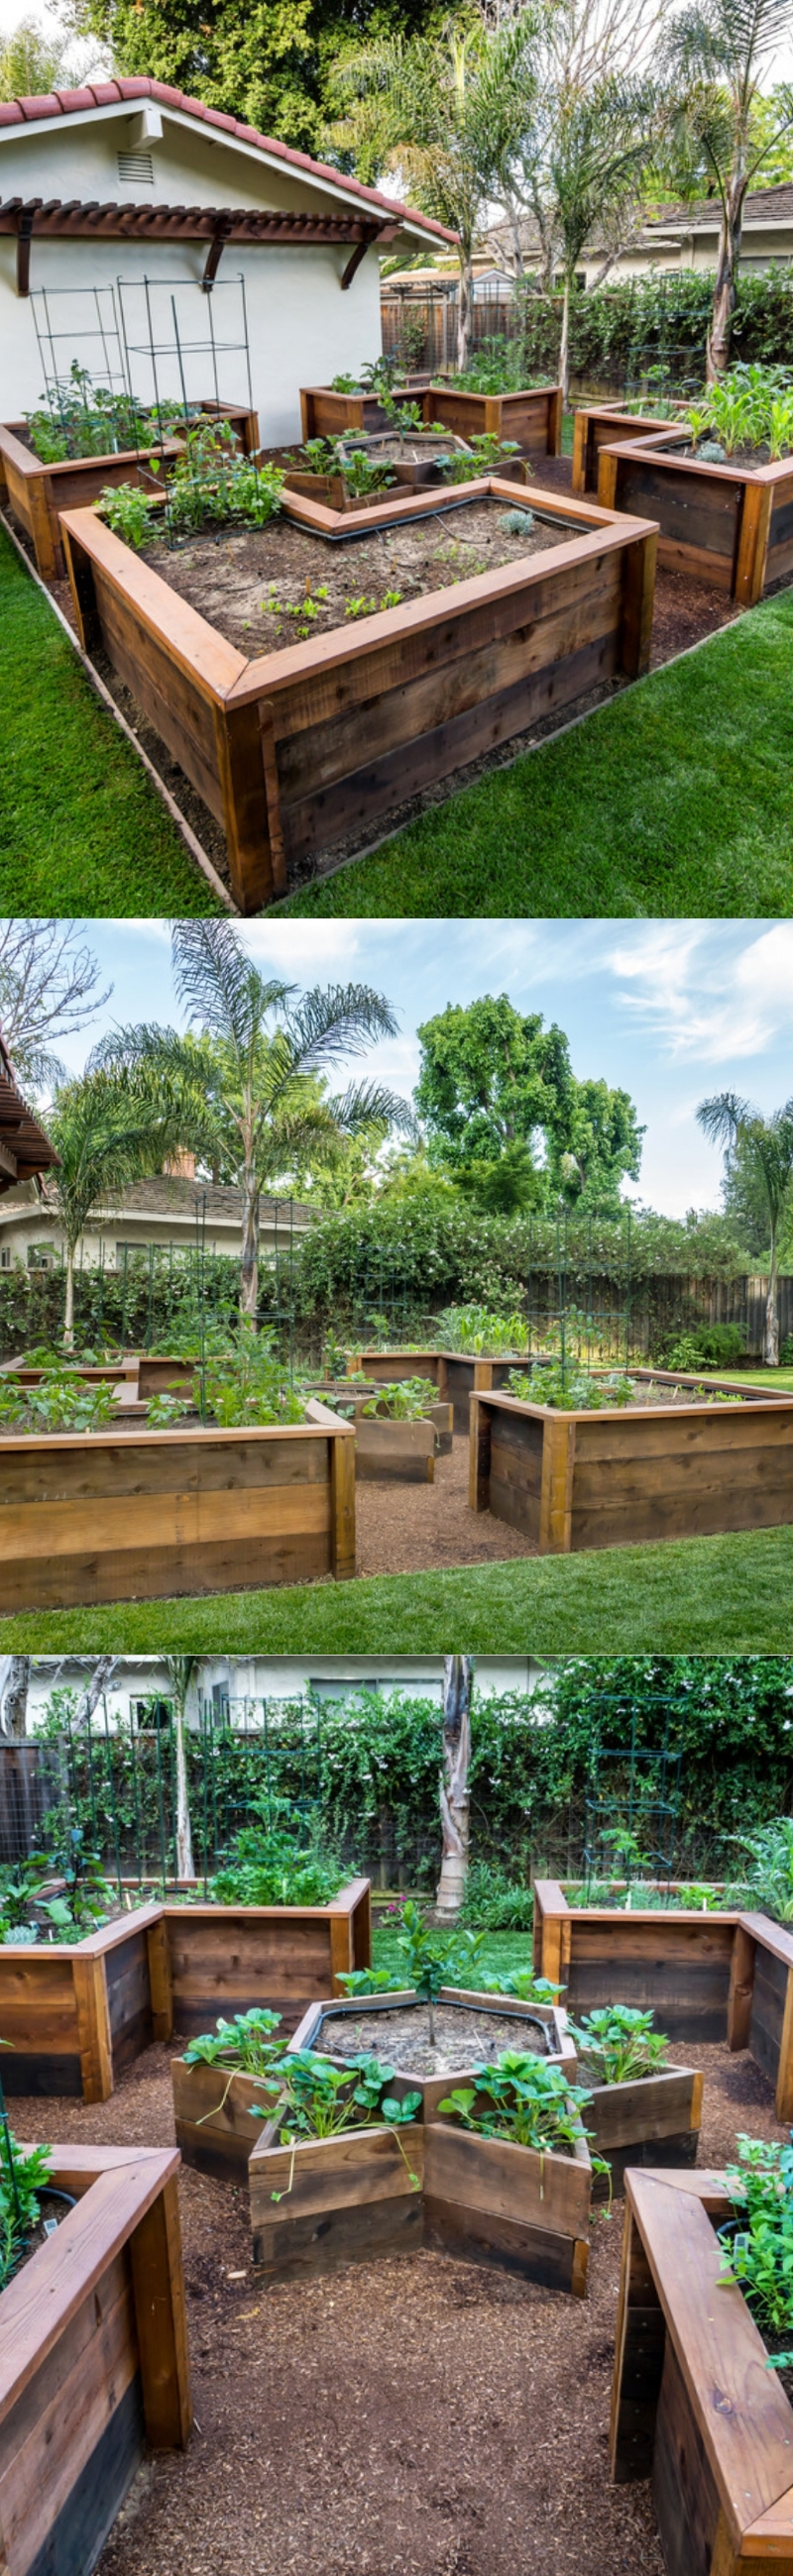 raised bed garden layout